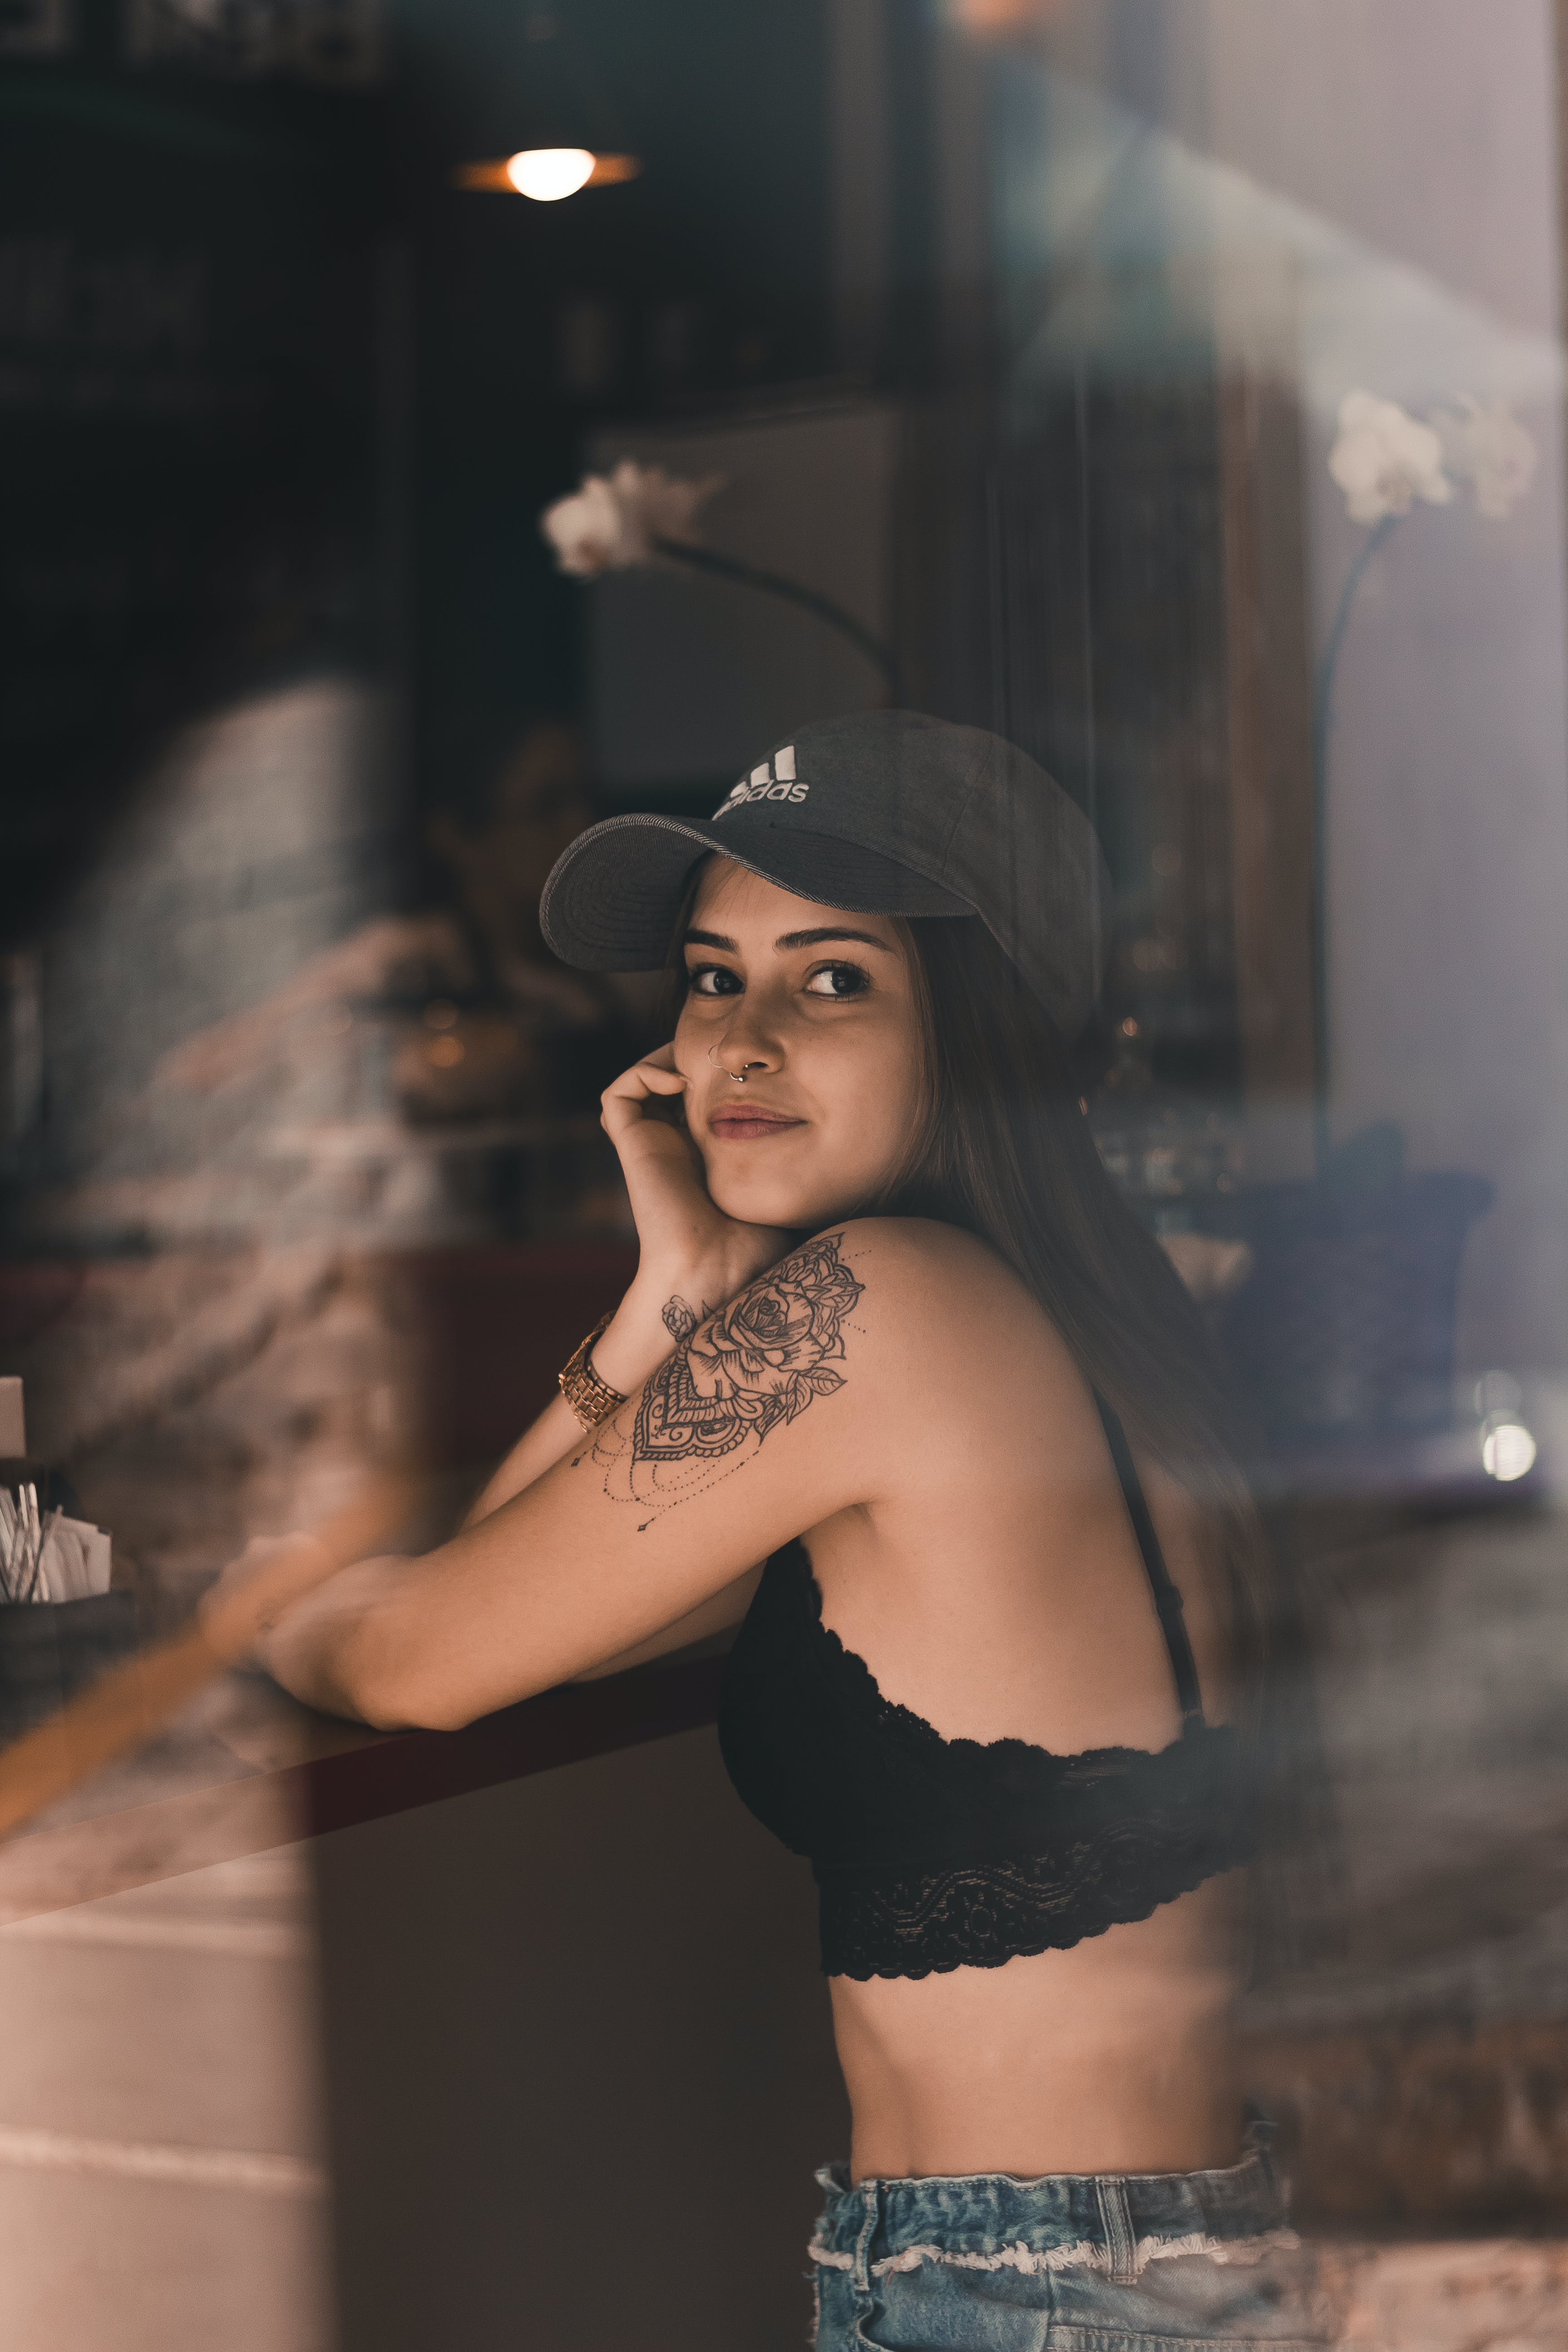 Woman in Black Adidas Cap and Lace Brassiere